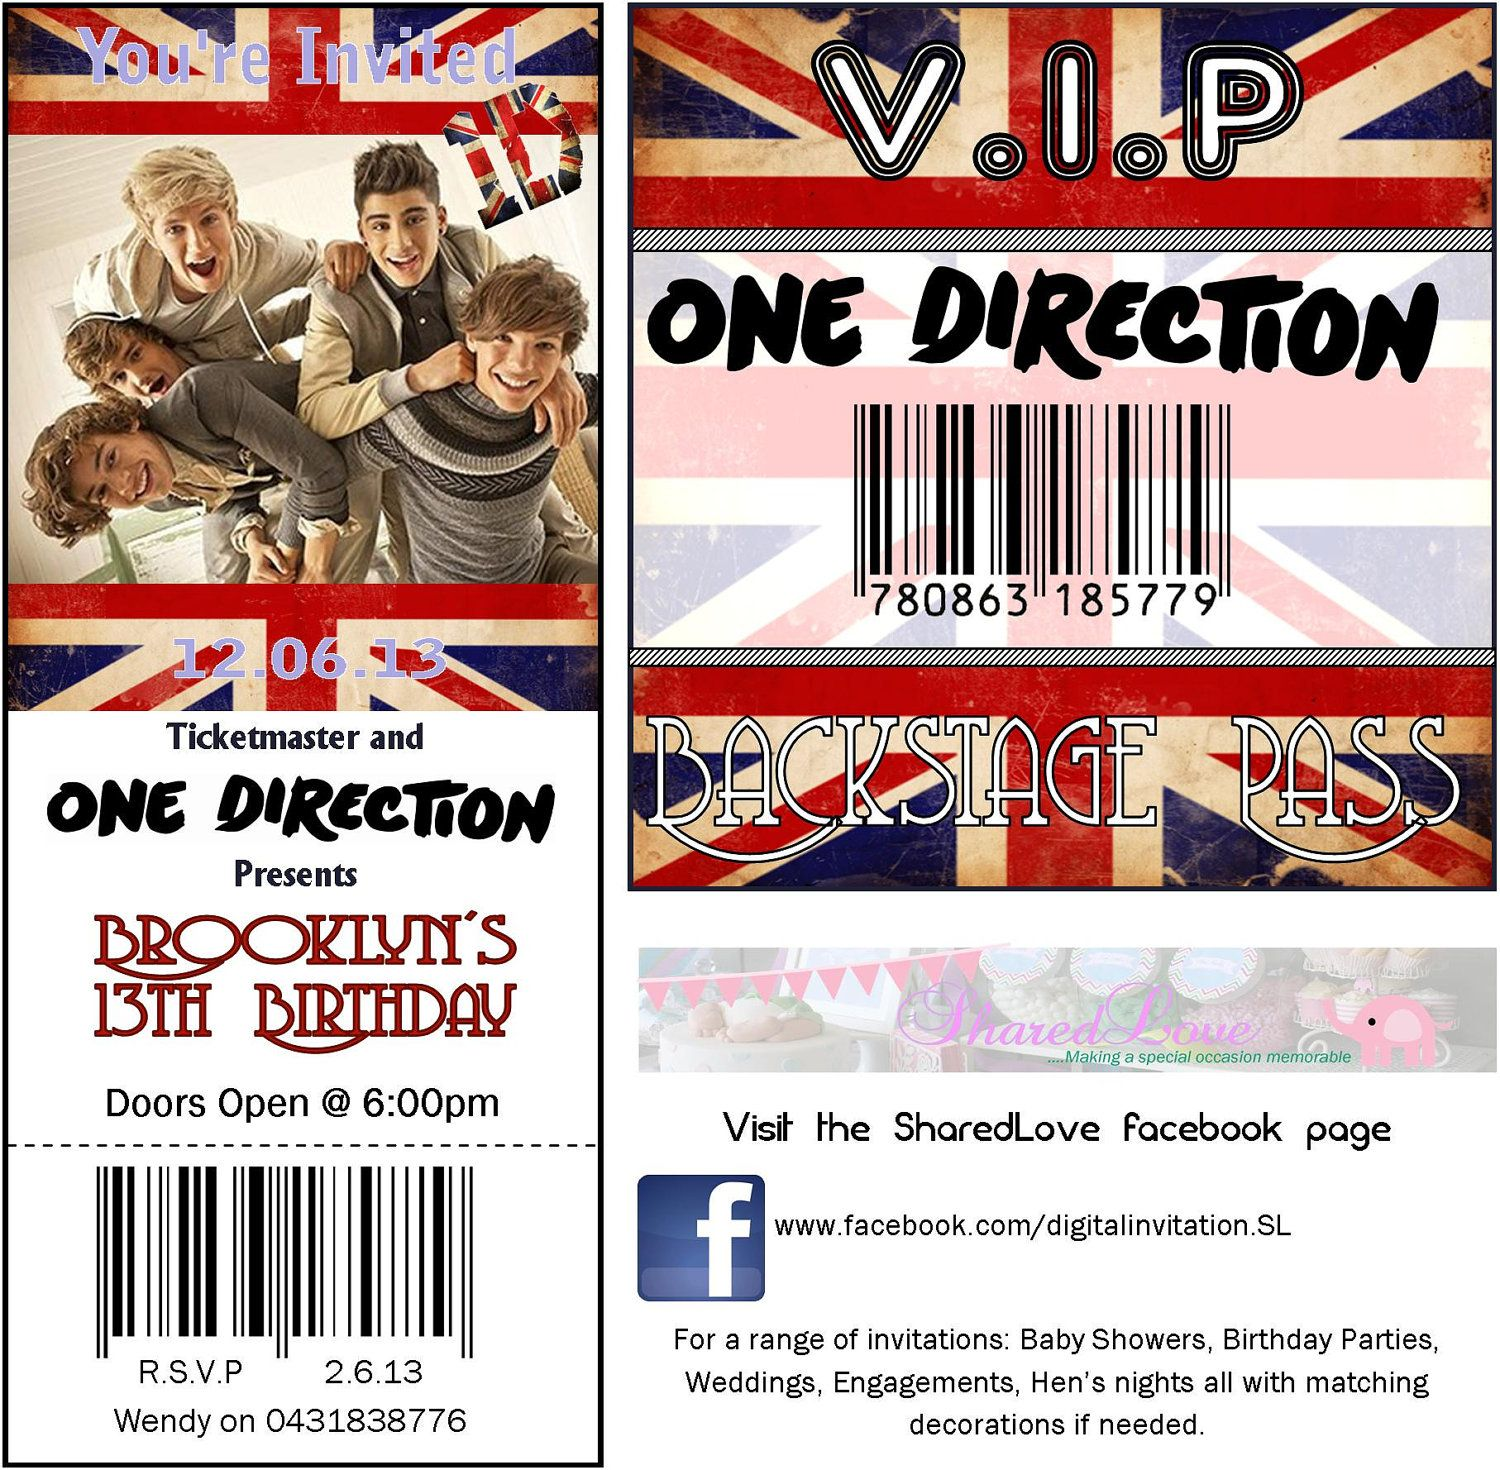 One direction birthday party vip vip ticket invitation and one direction birthday party vip m4hsunfo